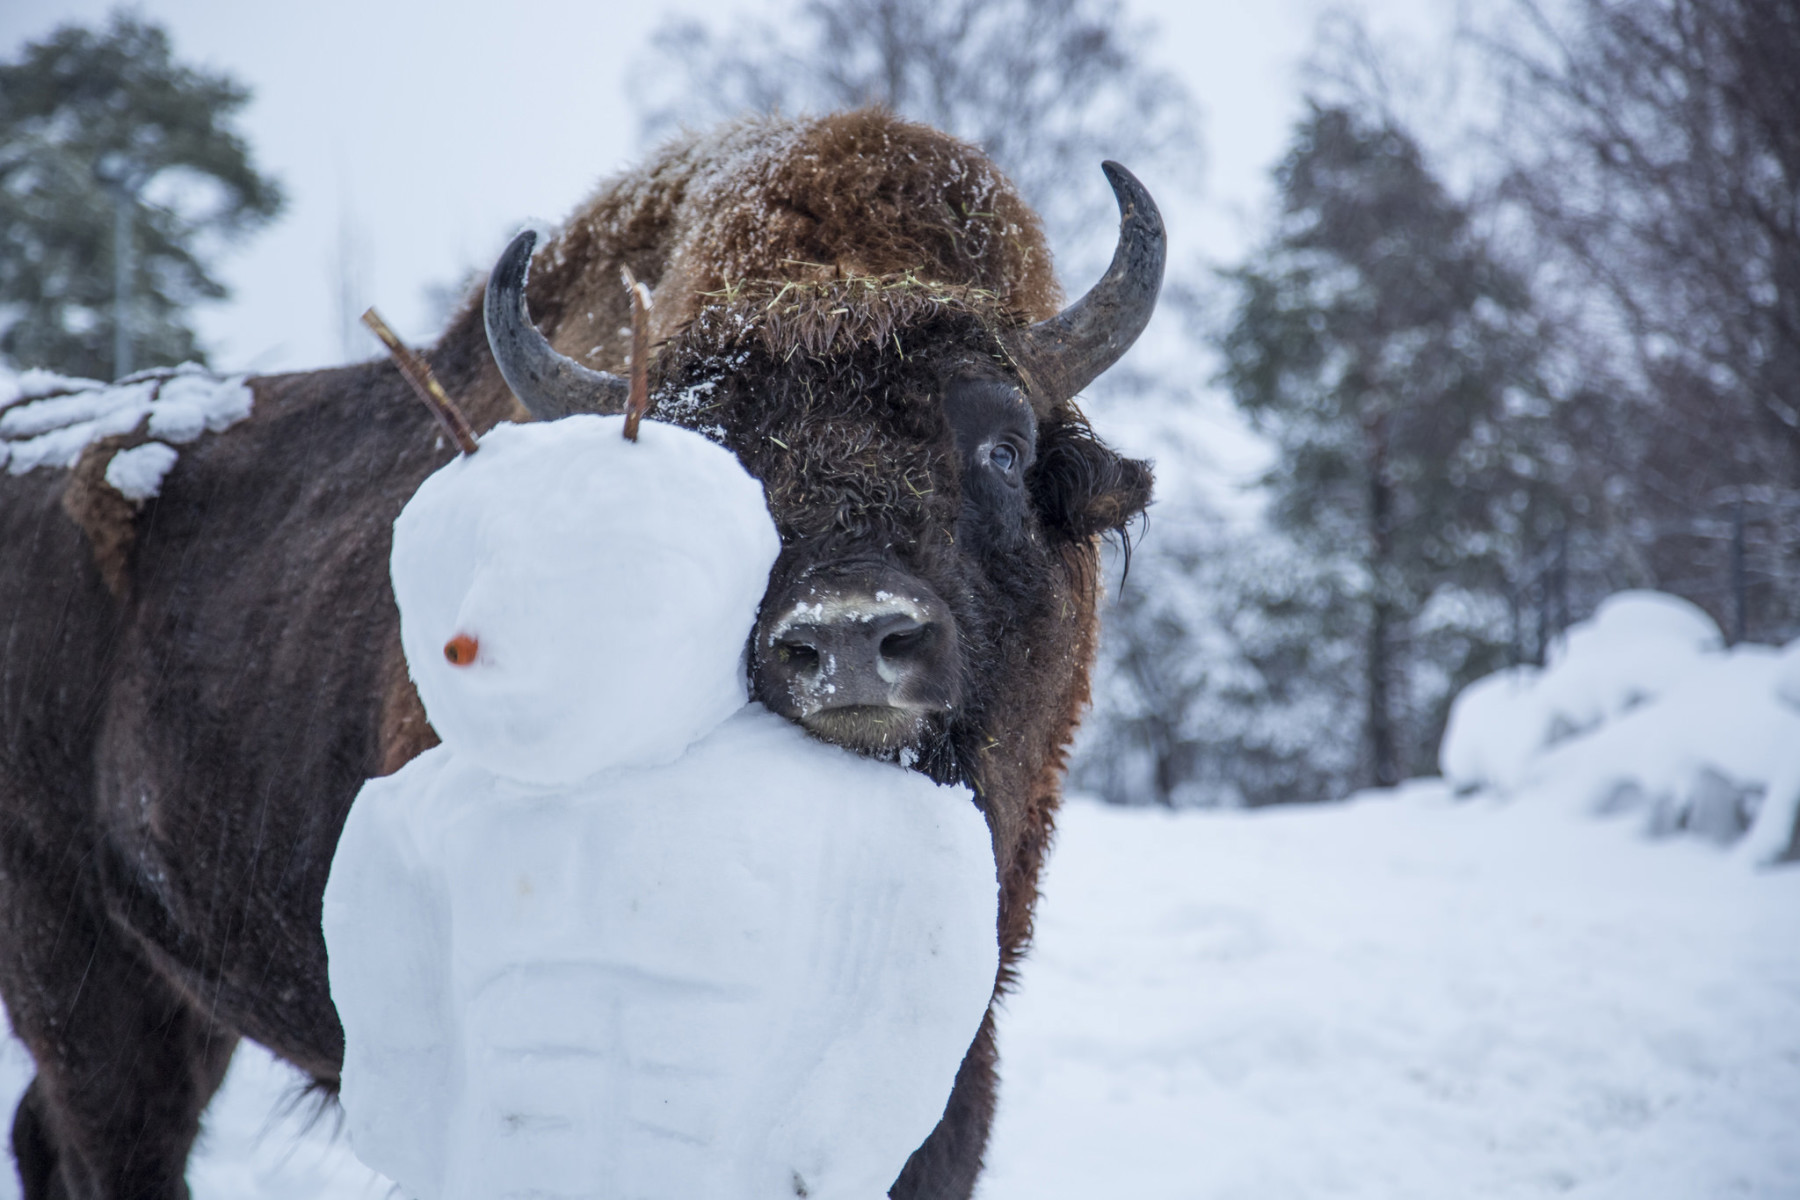 European bison born in Helsinki are today roaming the forests of Russia. But there are no plans to introduce the zoo's abominable snowmen into the wild.